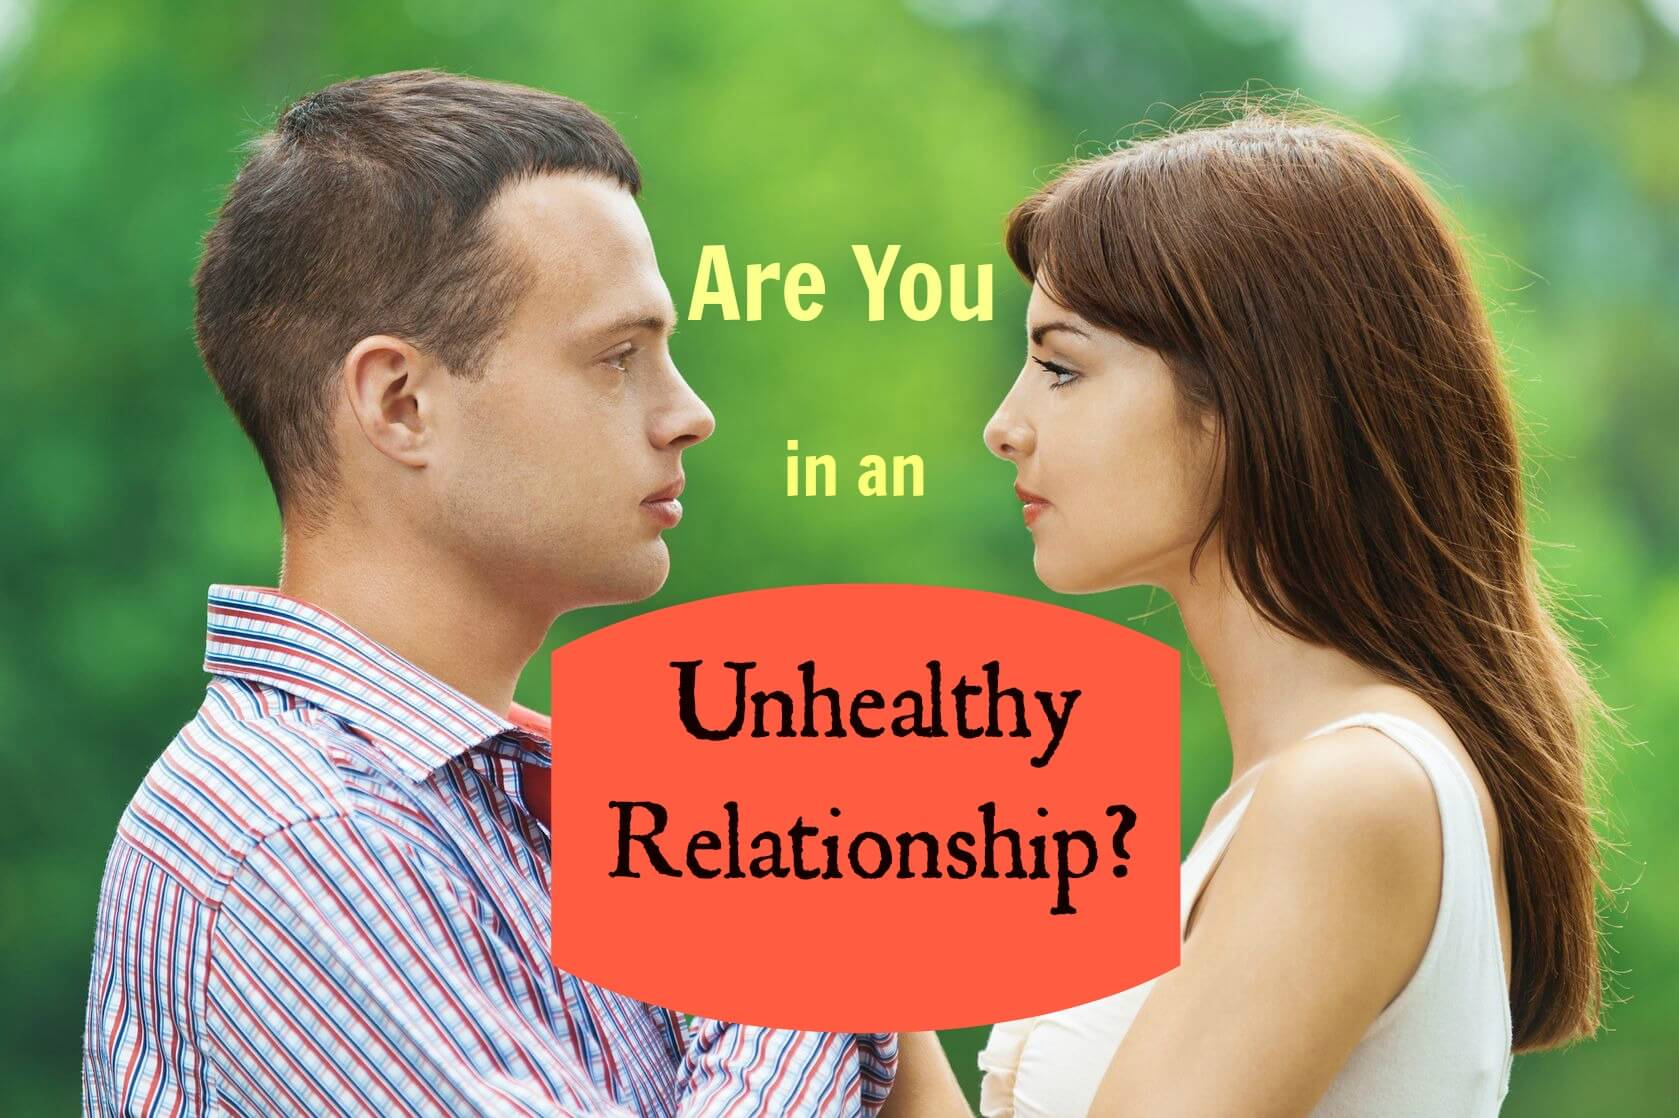 How to move on from an unhealthy relationship